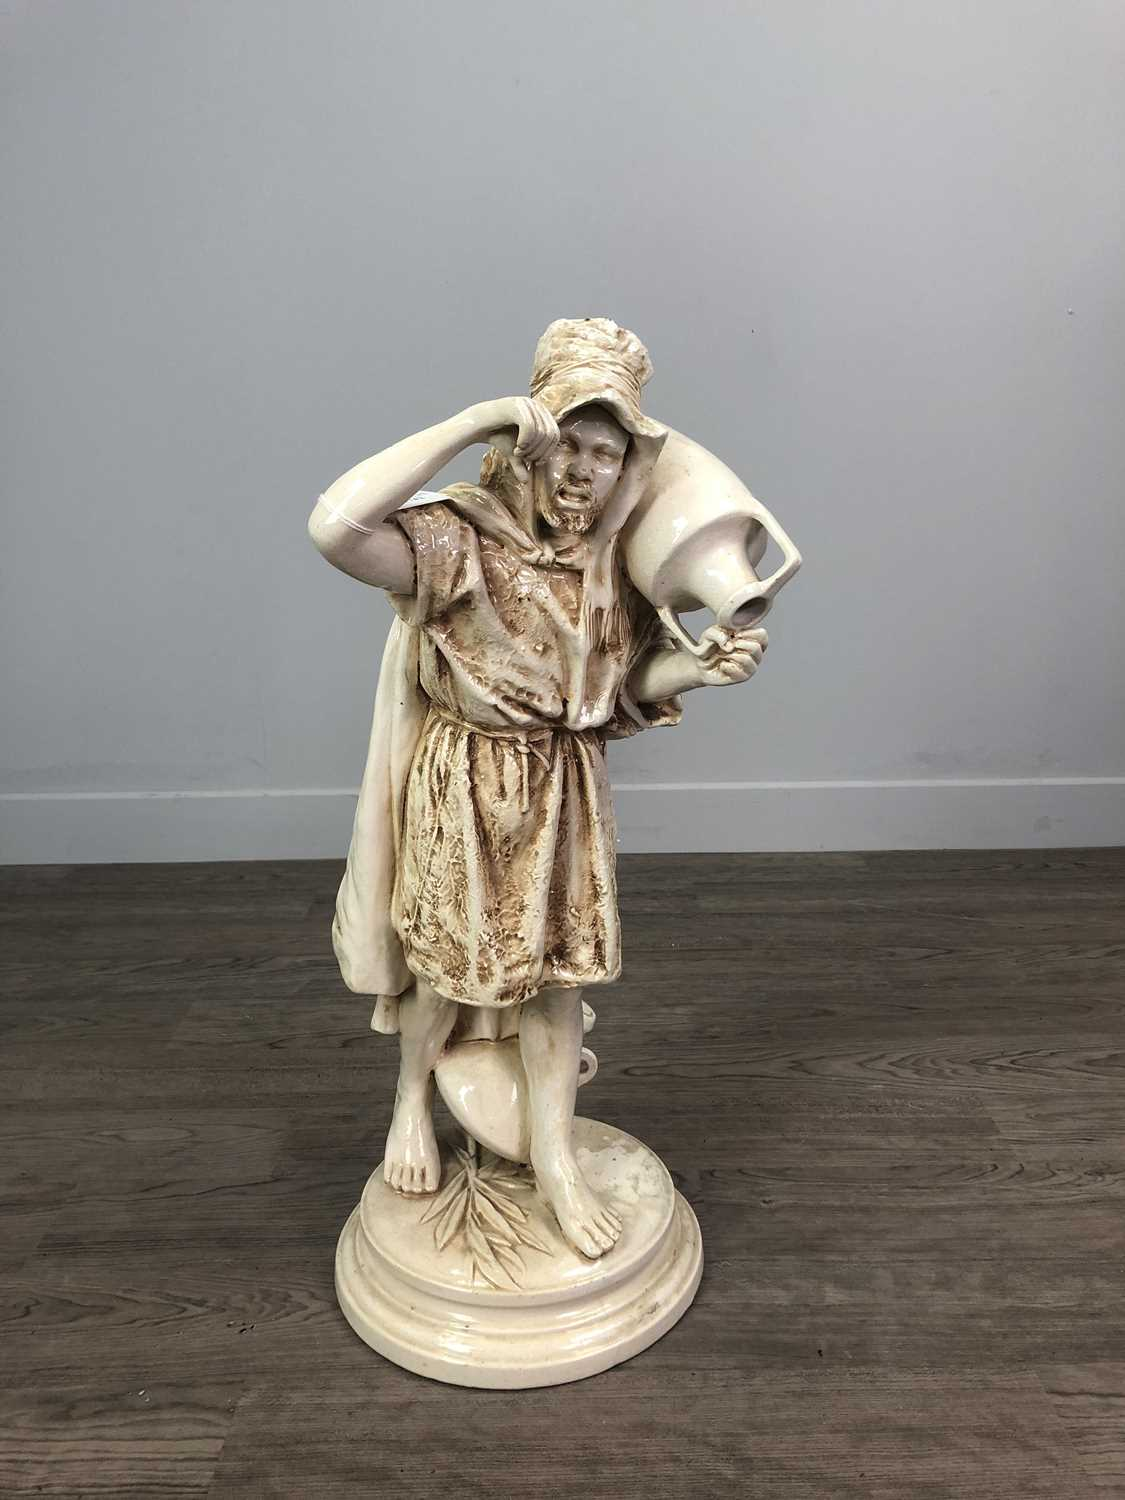 Lot 755 - A 20TH CENTURY POTTERY FIGURE OF A MAN WITH AMPHORA